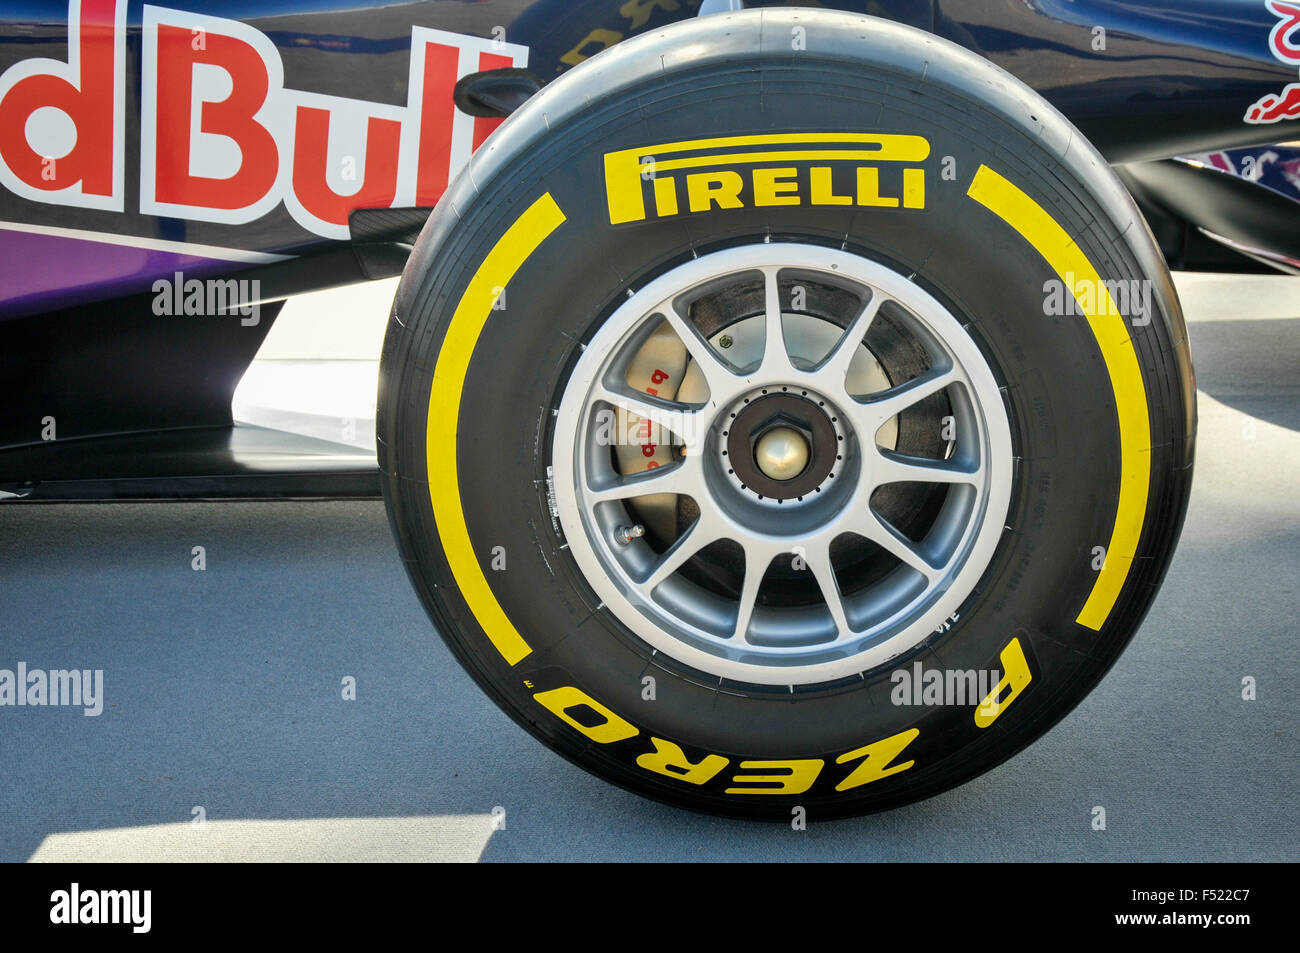 Pirelli 'slick' tyre on the front of a Red Bull Formula One race car. - Stock Image